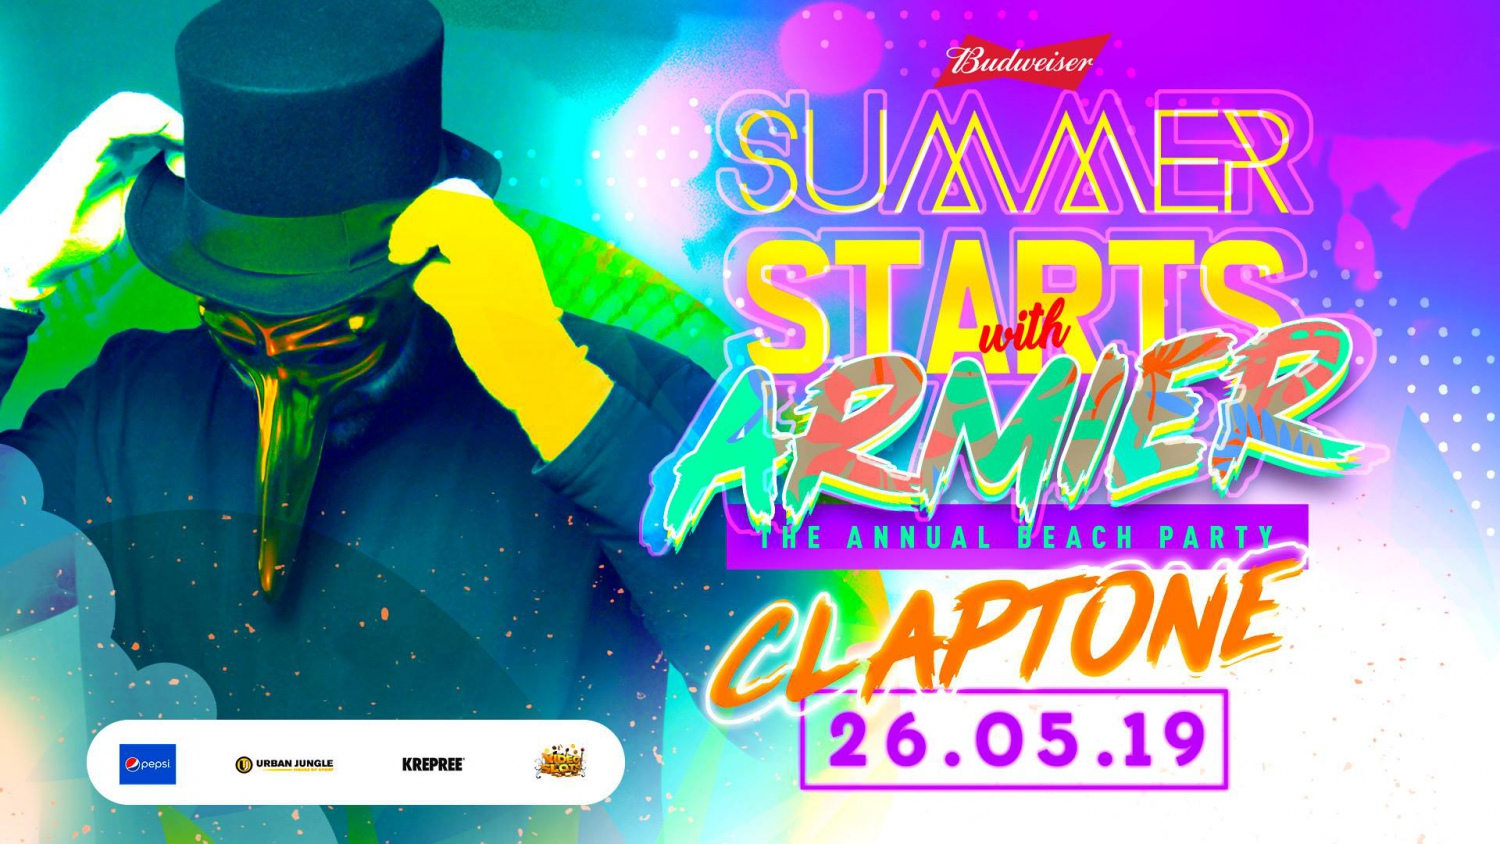 The Armier Beach Party feat Claptone - 26.05.19